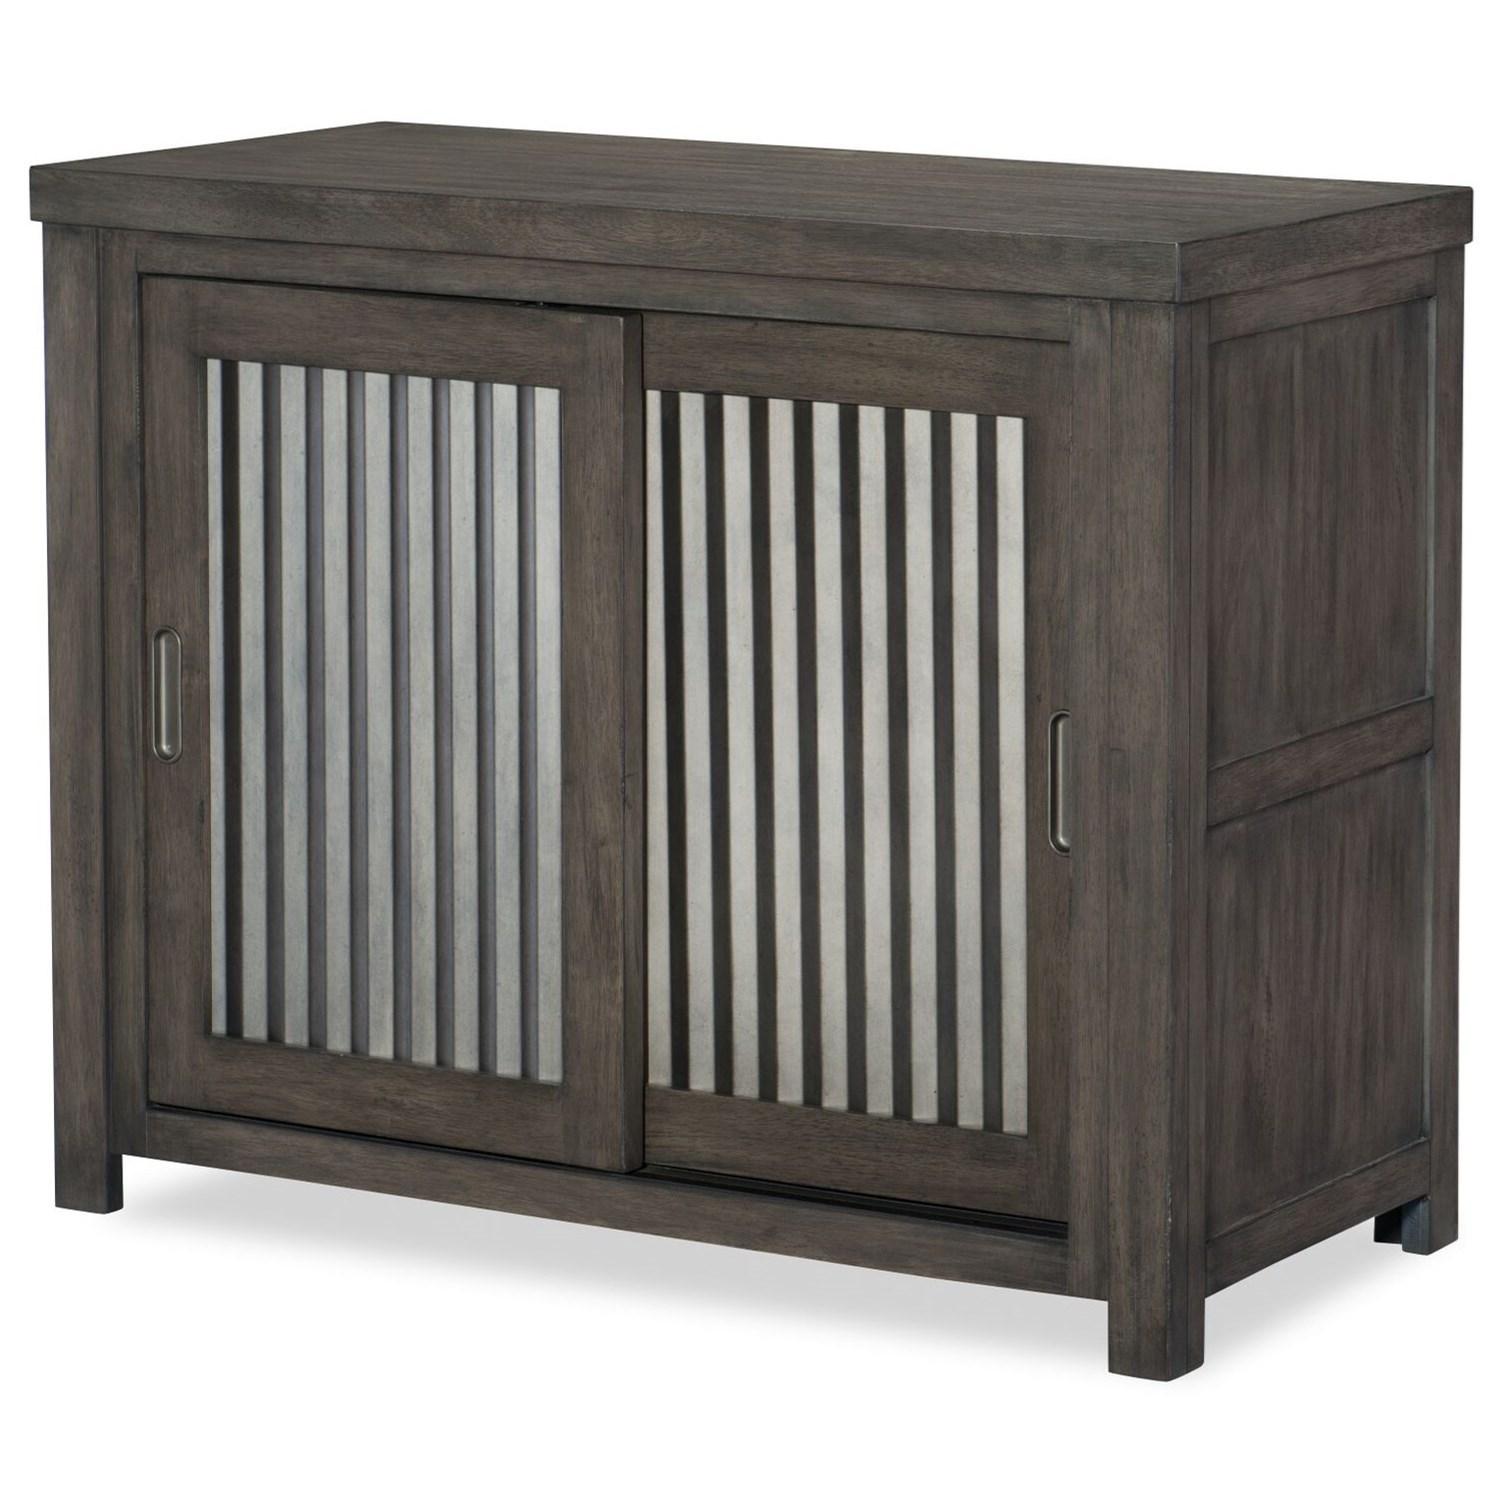 Attrayant Legacy Classic Kids Bunkhouse Rustic Casual Sliding Door Chest With  Corrugated Metal Doors